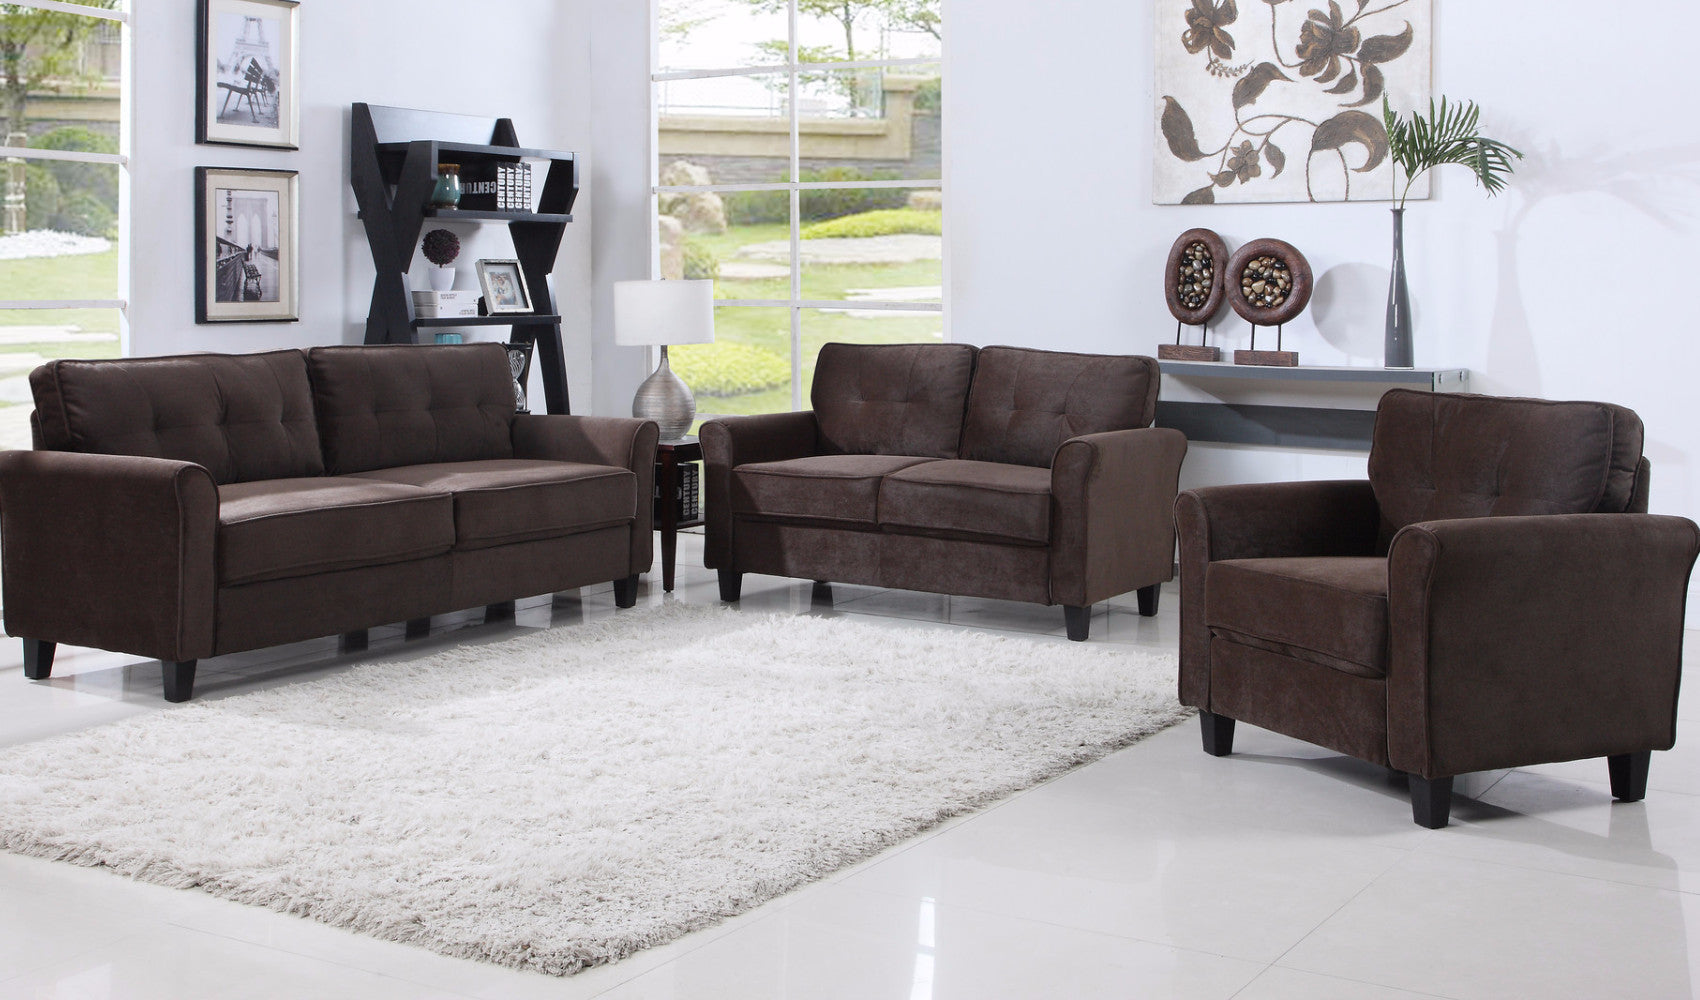 Living Room Sets Images living room sets | living room furniture | sofamania